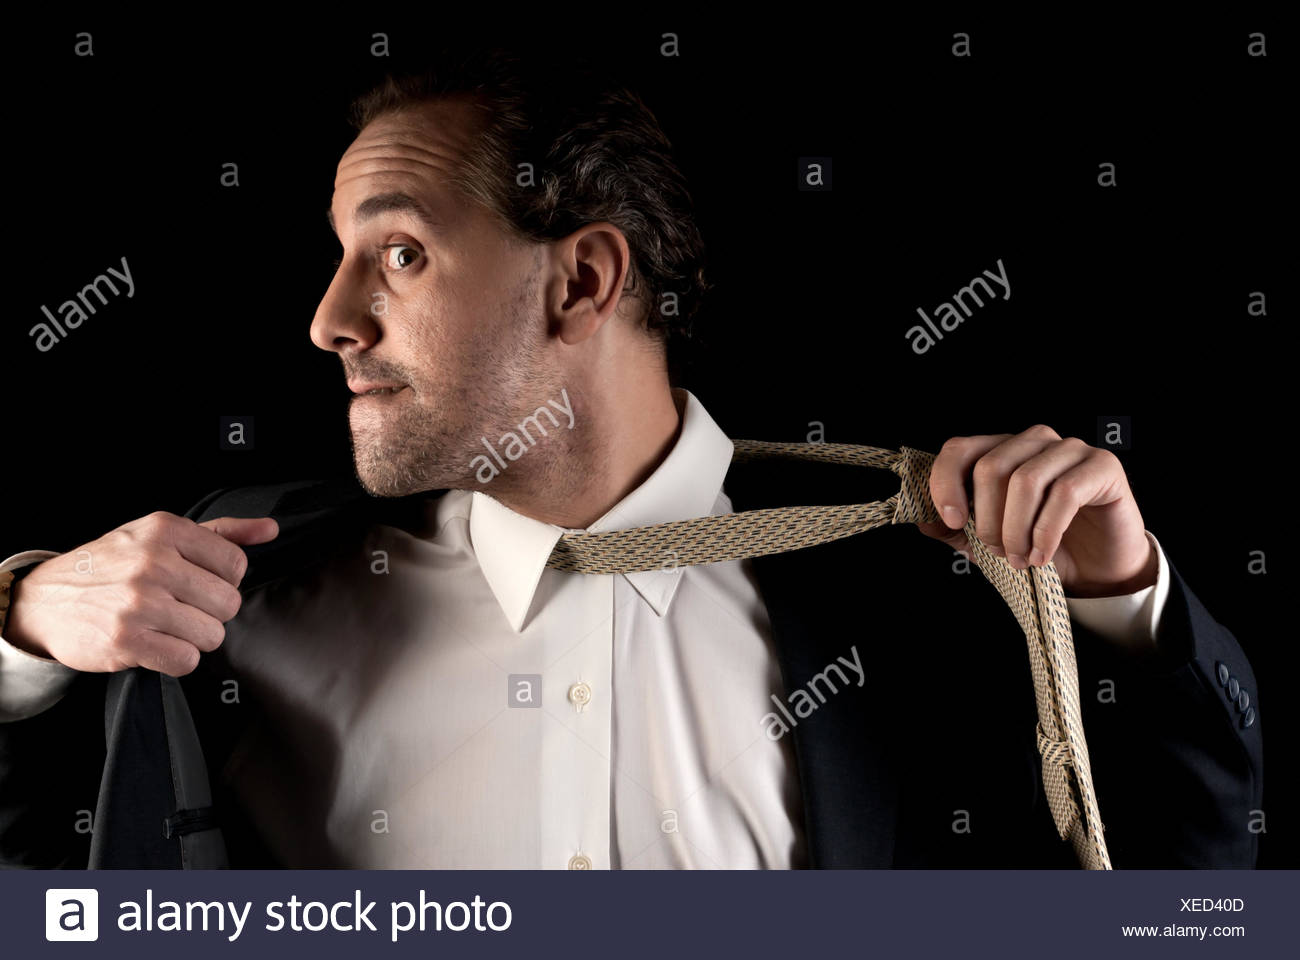 Adult businessman stressed pulling off tie on dark background - Stock Image